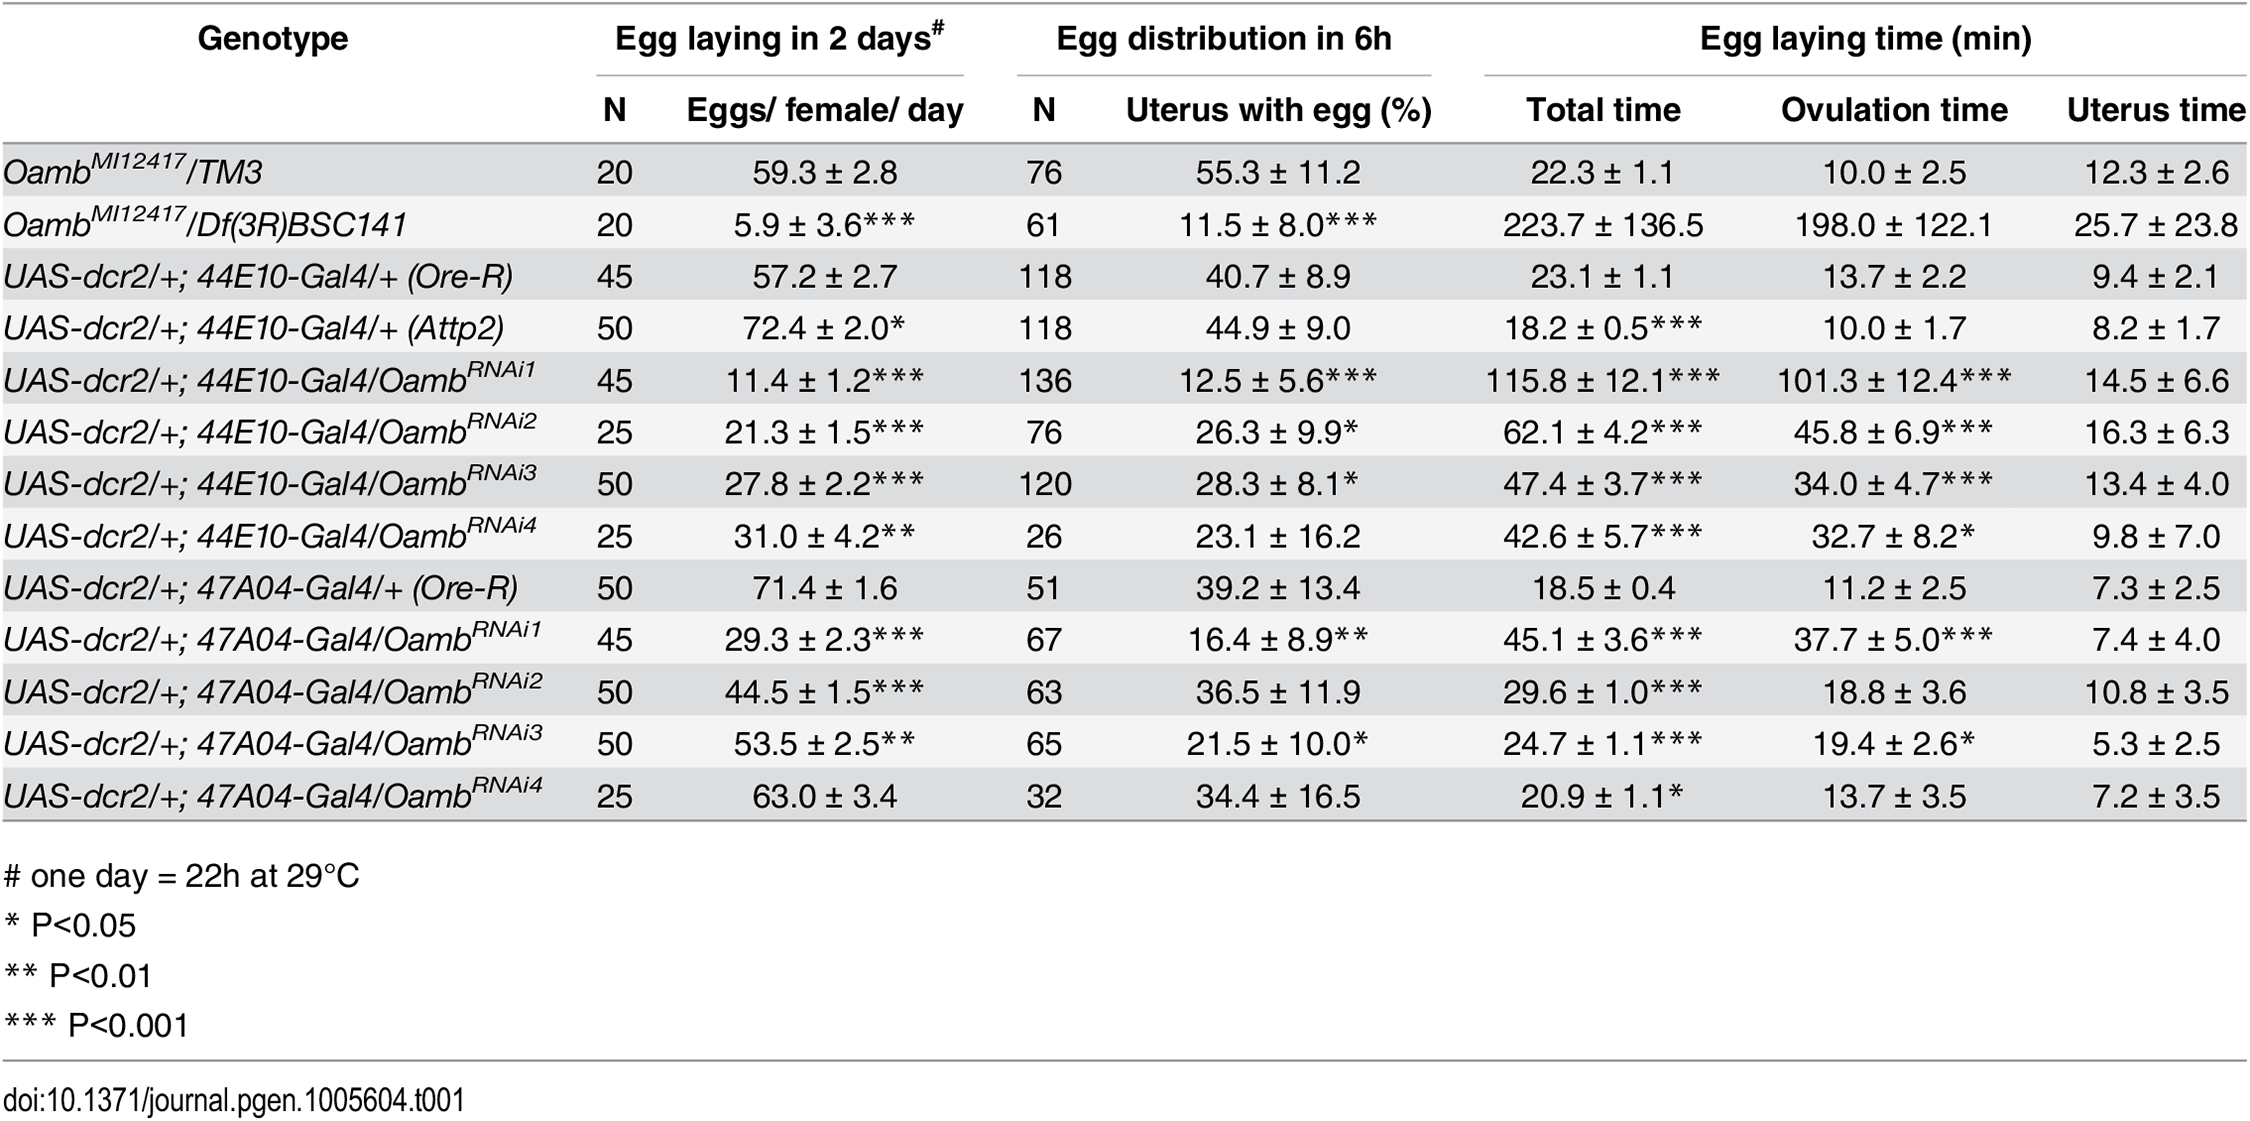 The effect of follicular adrenergic signaling on egg laying, egg distribution in the reproductive tract, and egg laying time.